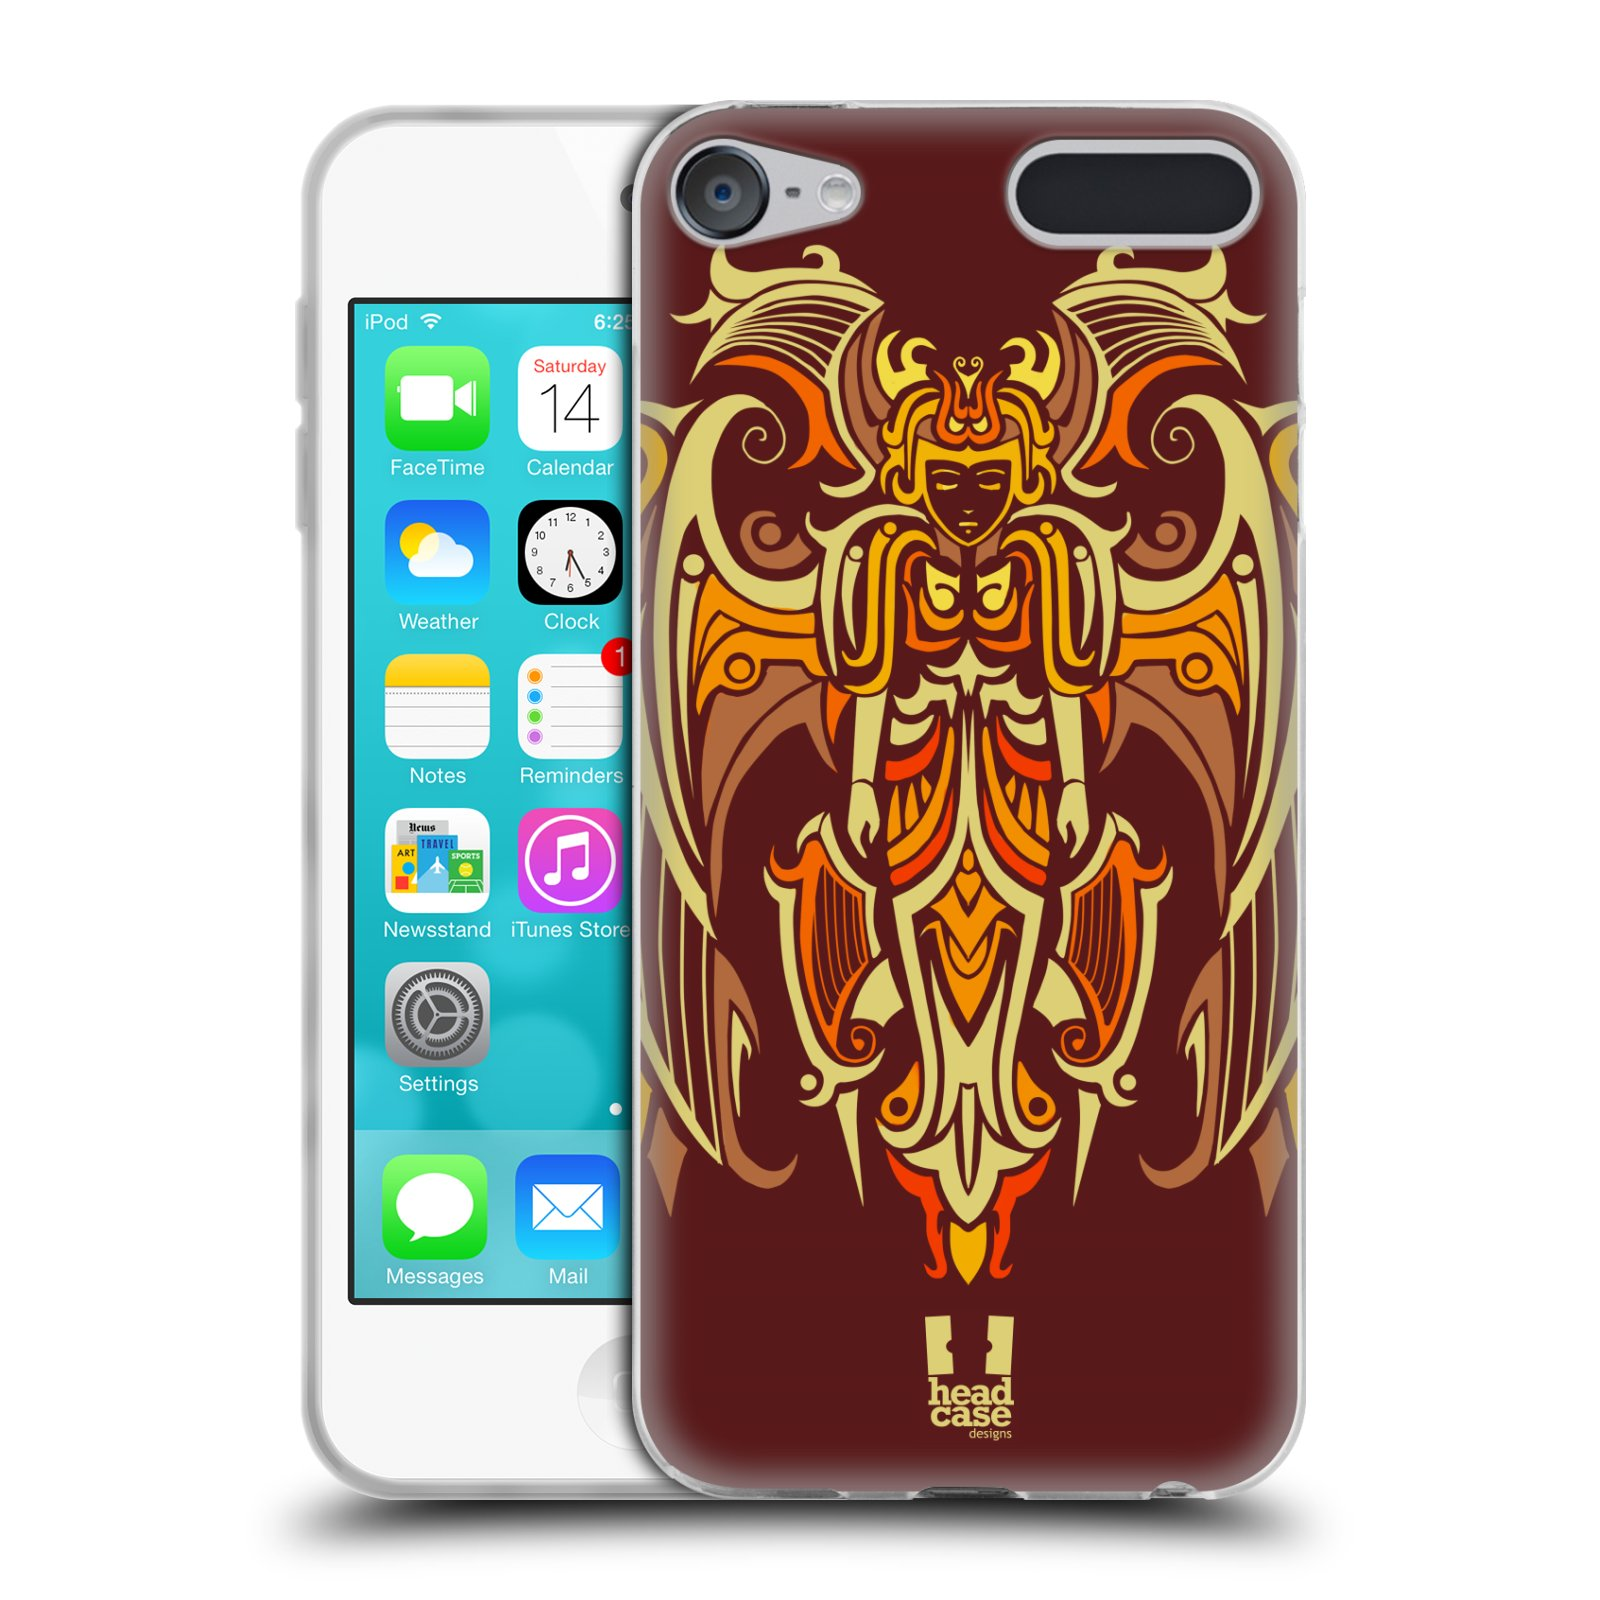 Taki Taki Lumba Mp3 Audio: HEAD CASE DESIGNS TRIBAL ANGELS SOFT GEL CASE FOR APPLE